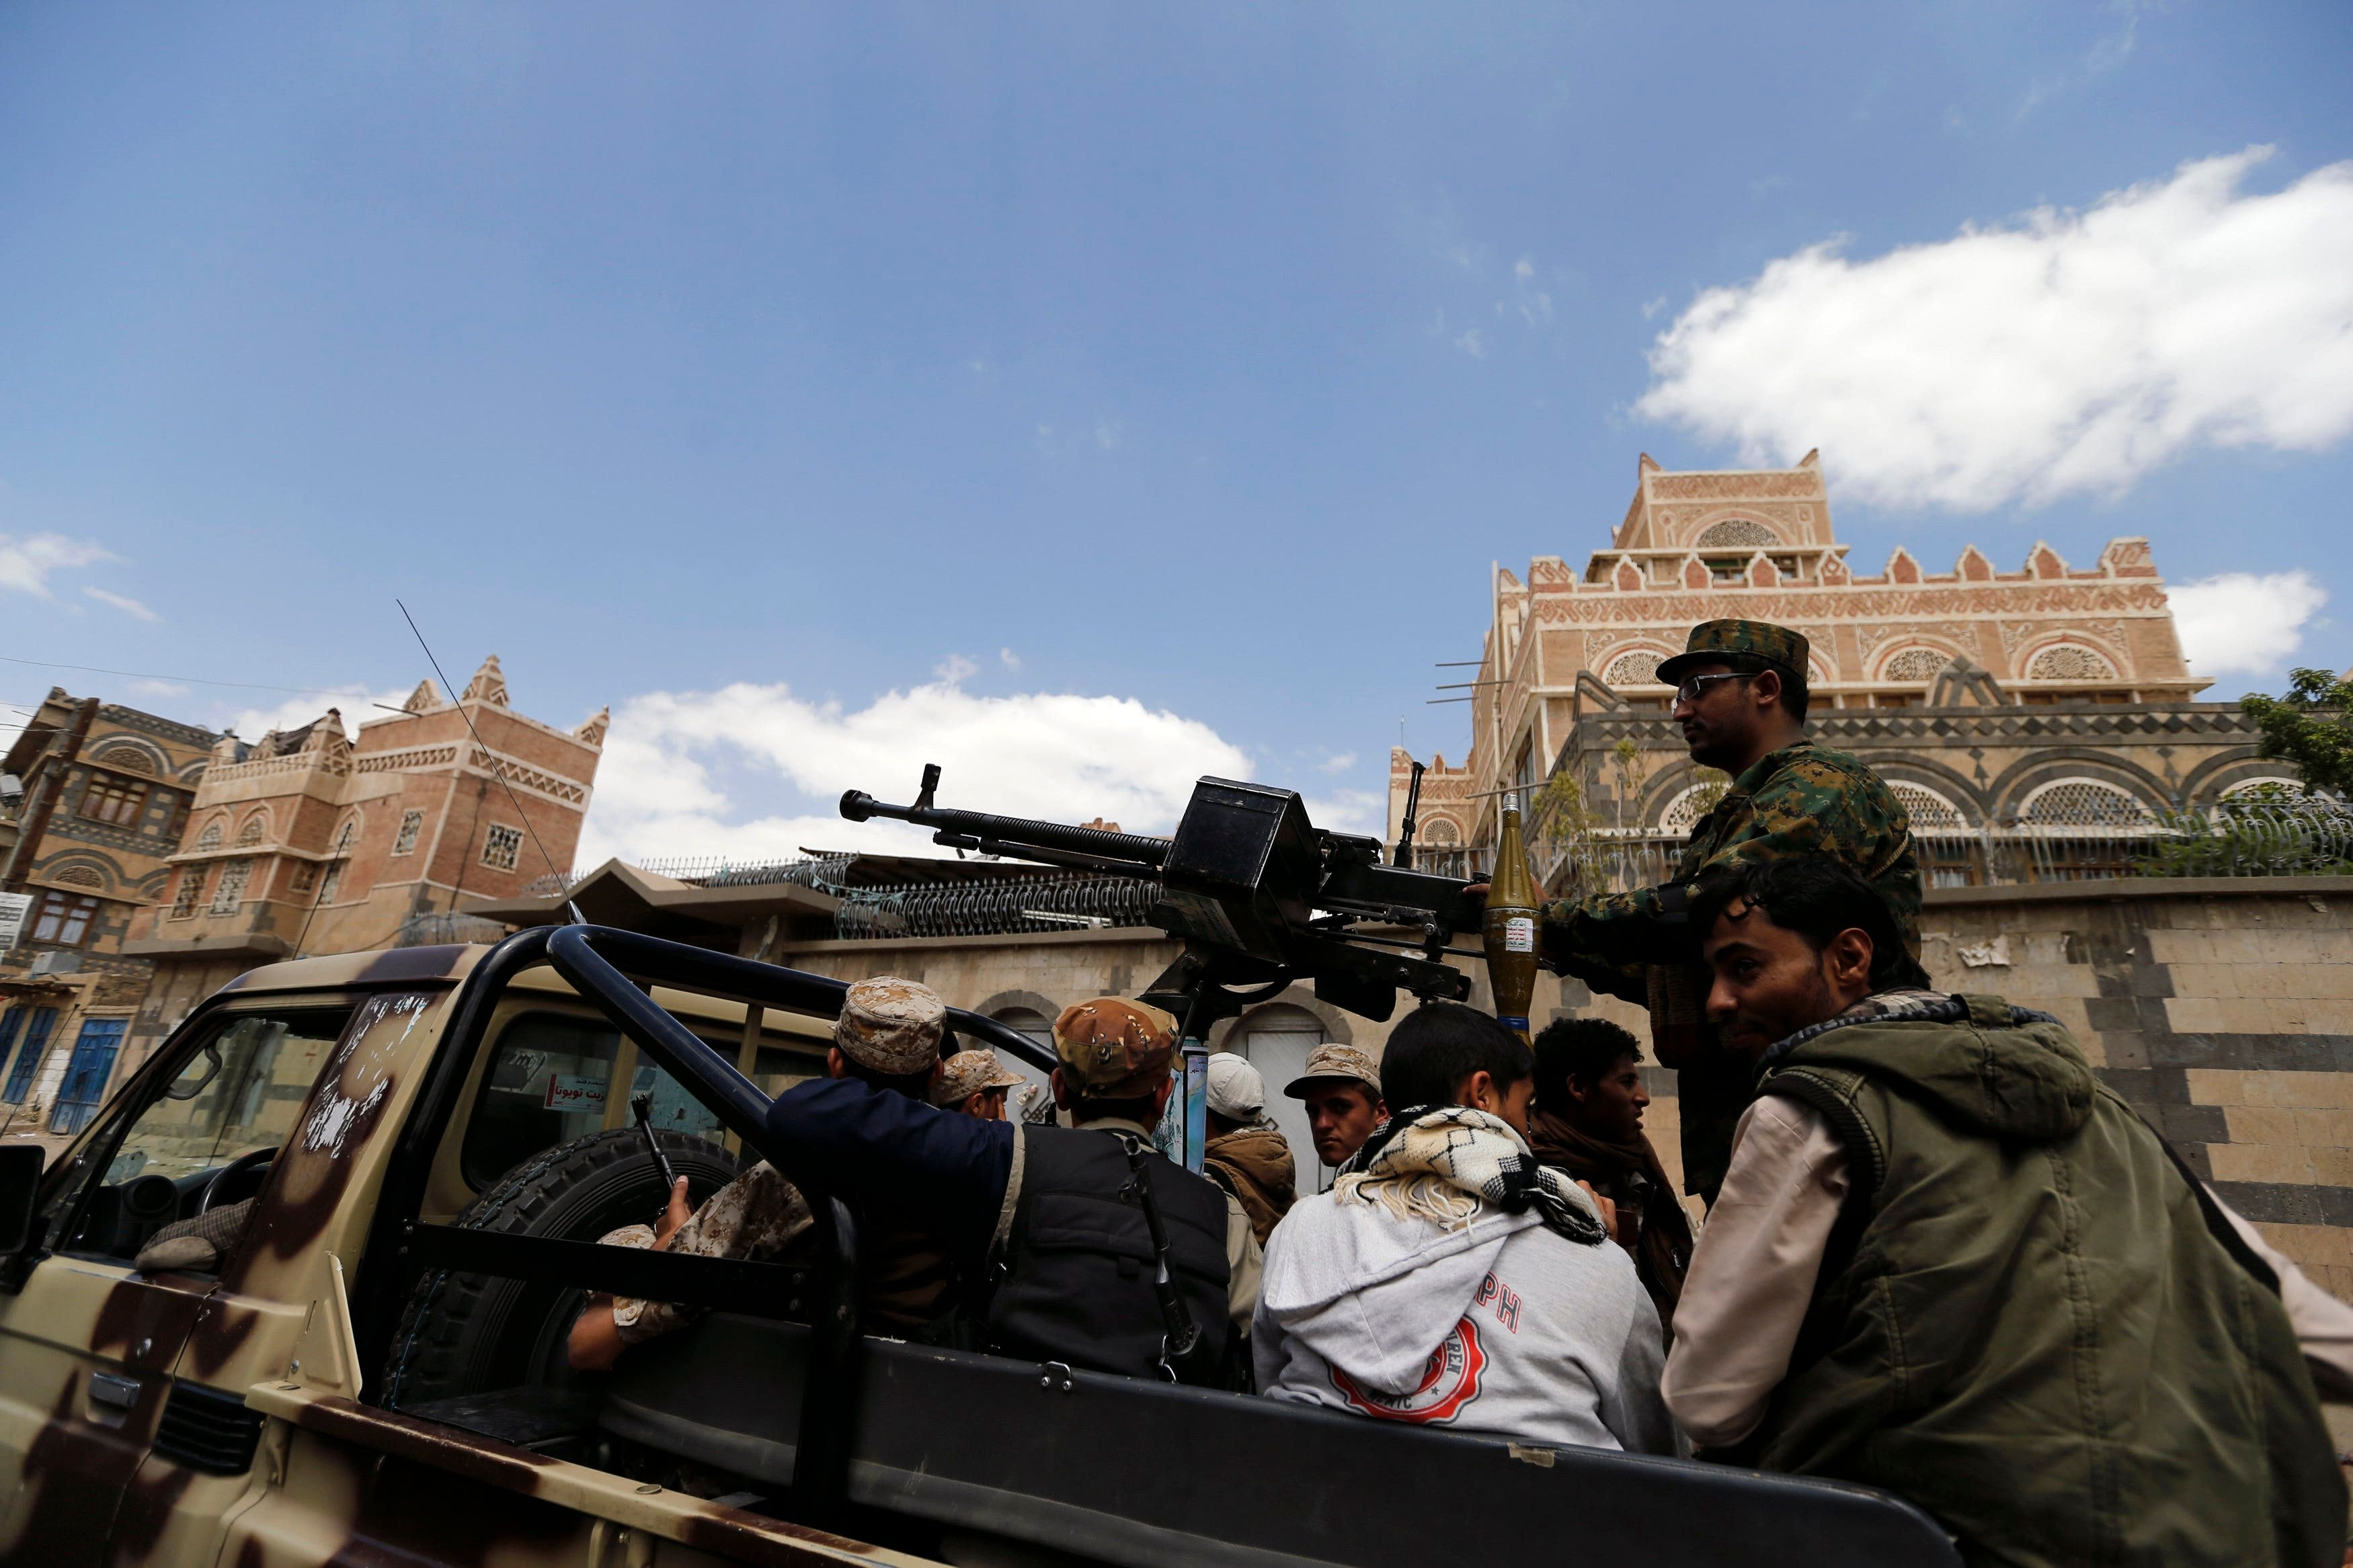 Shi'ite Houthi militants patrol the vicinity of a venue where a mass funeral for victims of a suicide attack on followers of the Shi'ite Houthi group was being held in Sanaa October 14, 2014. (Reuters)